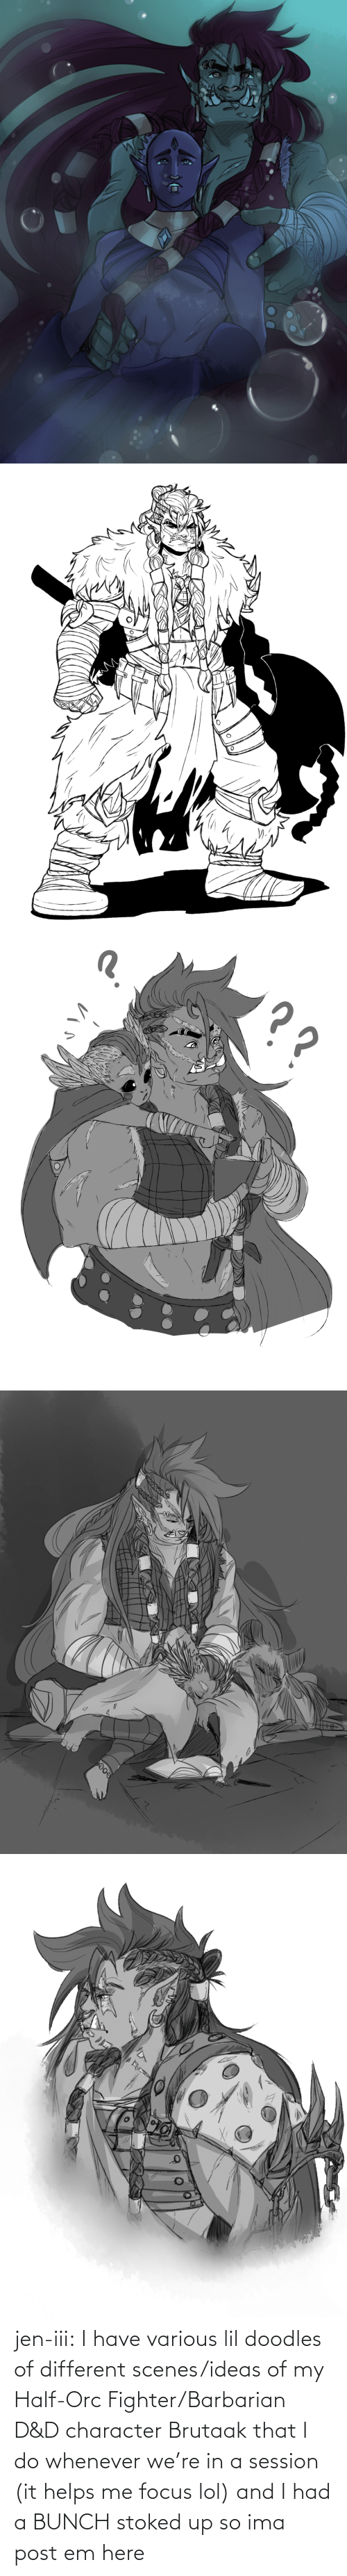 lol: jen-iii:  I have various lil doodles of different scenes/ideas of my Half-Orc Fighter/Barbarian D&D character Brutaak that I do whenever we're in a session (it helps me focus lol) and I had a BUNCH stoked up so ima post em here